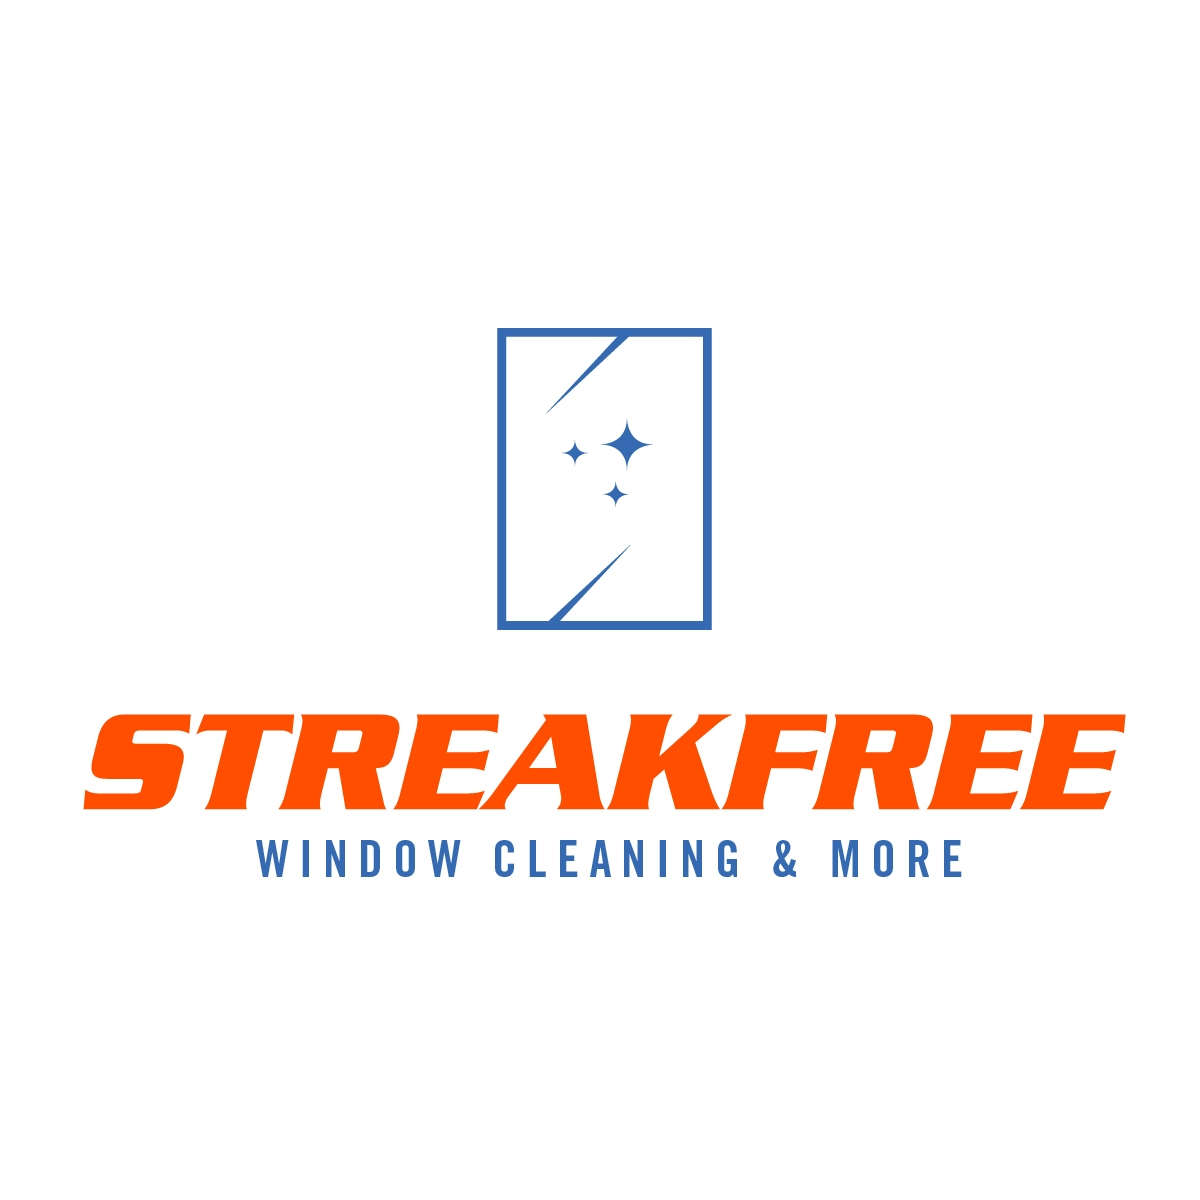 Streakfree Window Cleaning and More